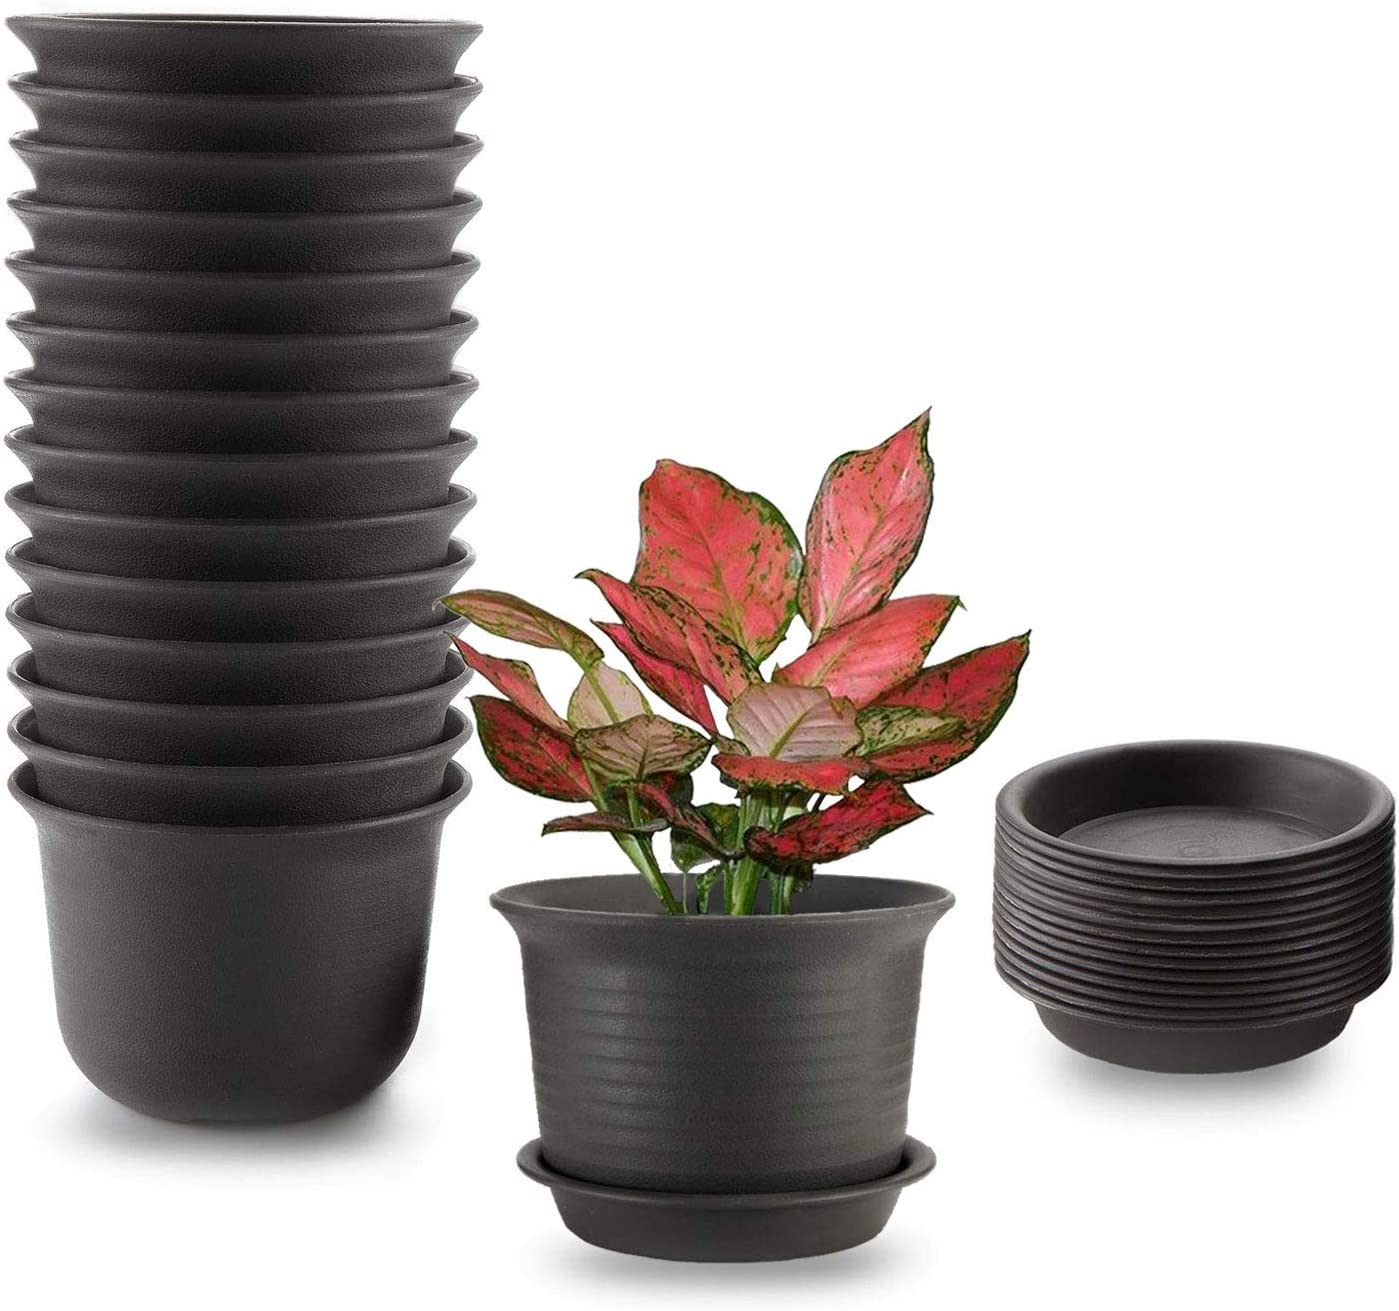 MOHENA 15PCS Plant Pots Indoor, 6 Inch Plastic Planter Pots with Saucer, Nursery Garden Pot with Drainage Hole and Tray for Flowers Herbs Succulents Cactus - Brown